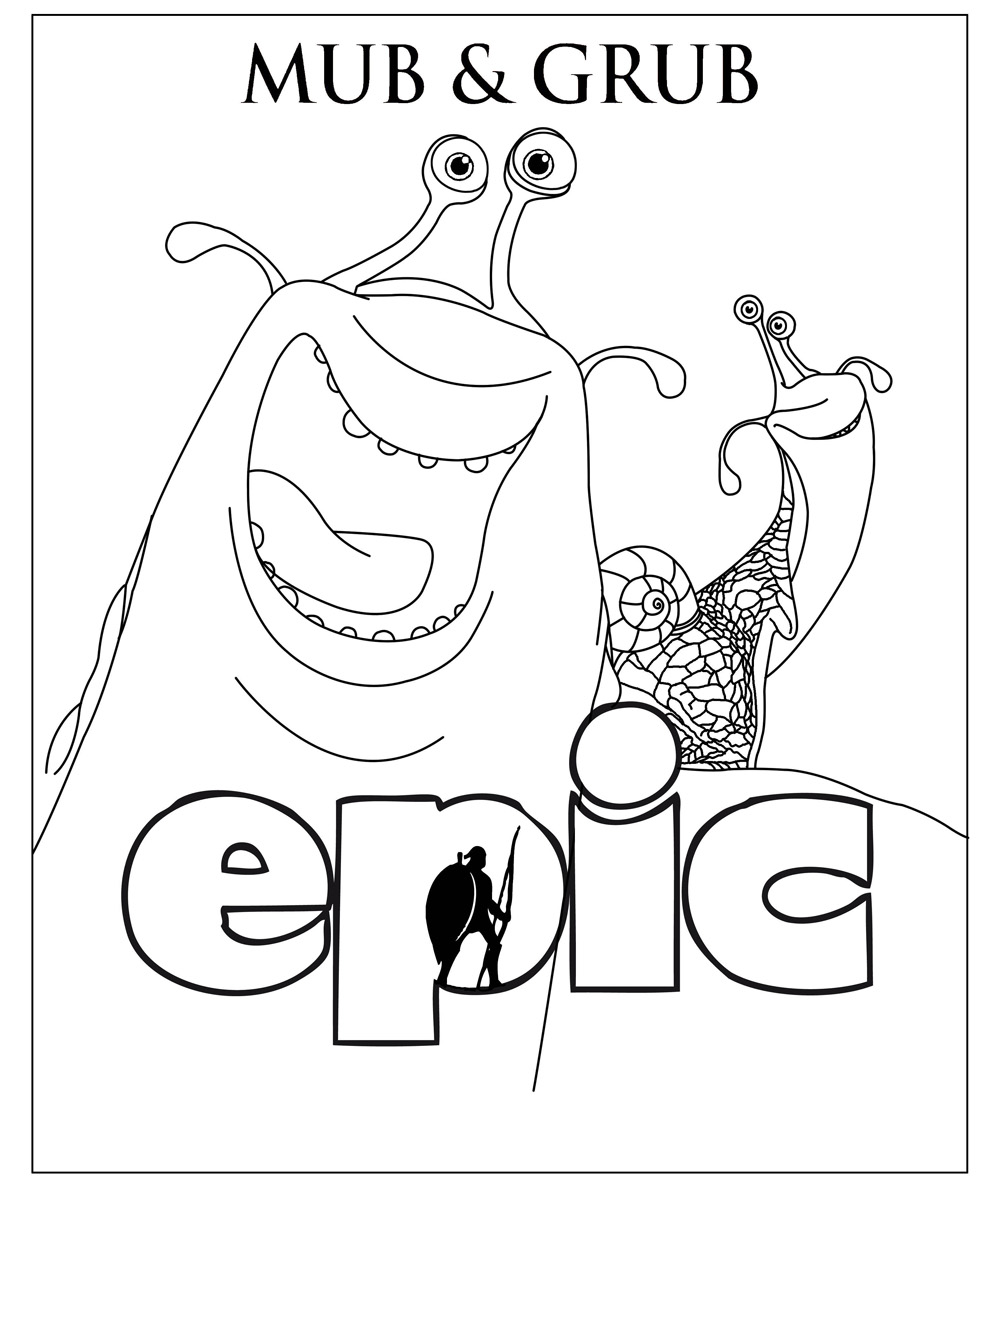 Epic coloring page to print and color for free